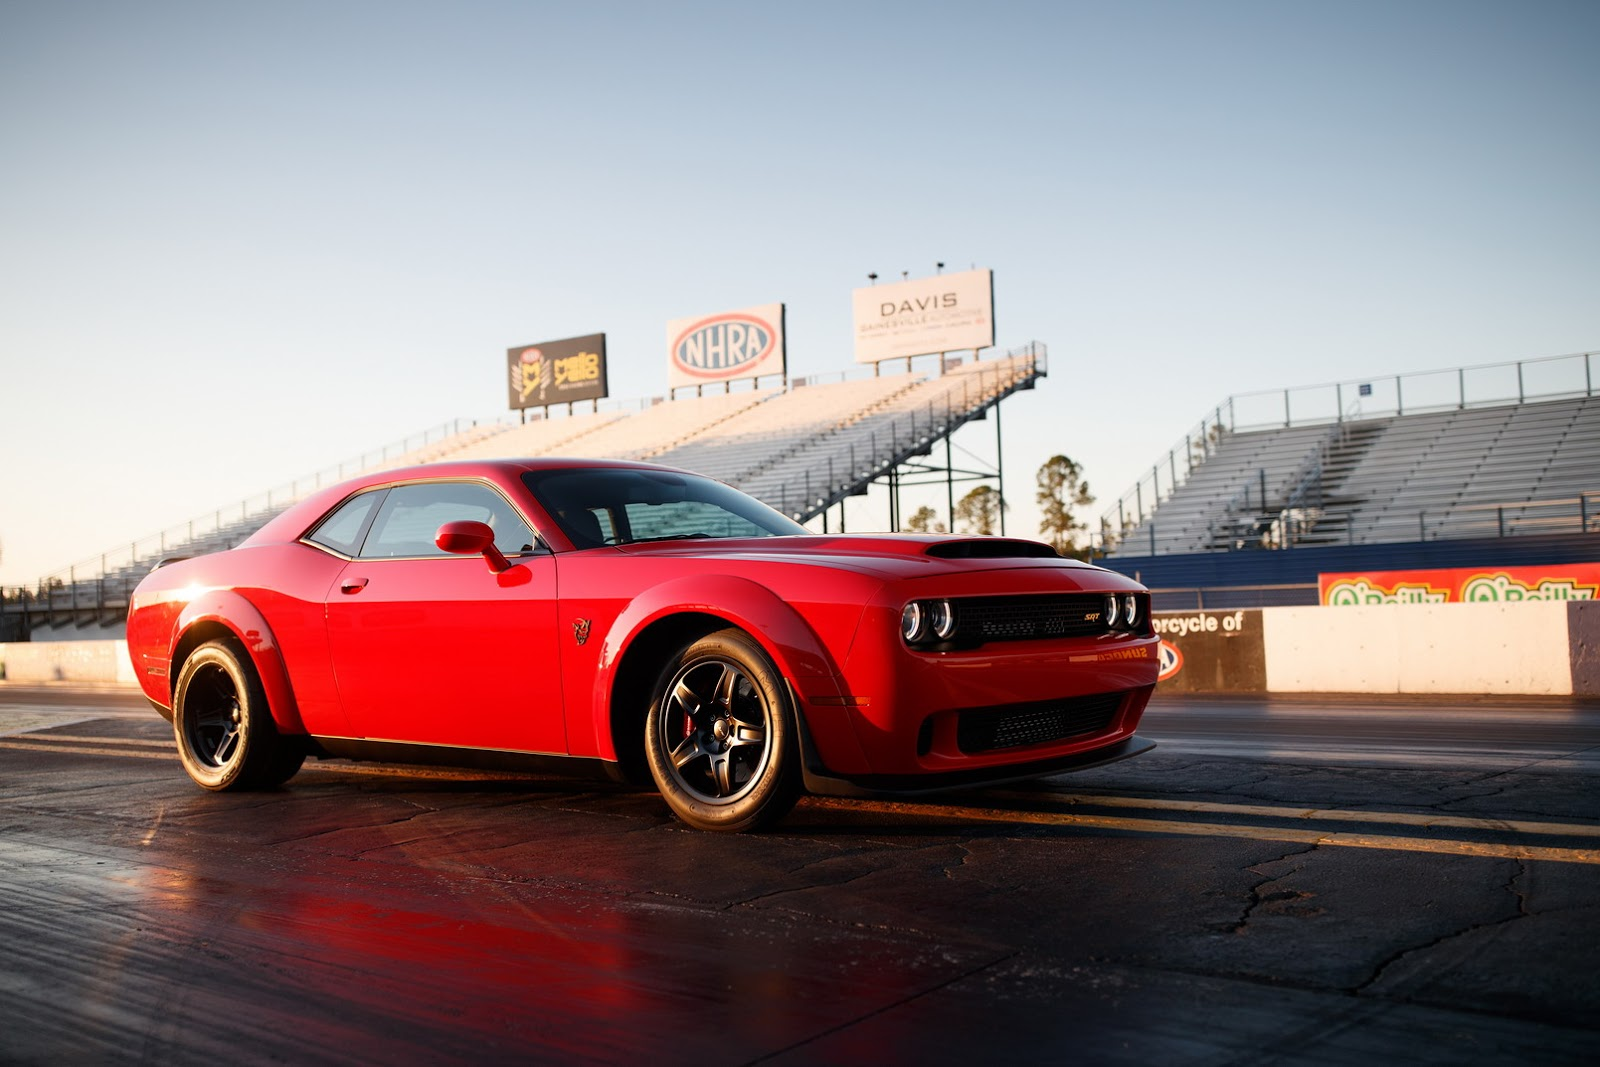 2018 dodge demon goes official as the world s fastest 1 4 mile production car autoevolution. Black Bedroom Furniture Sets. Home Design Ideas